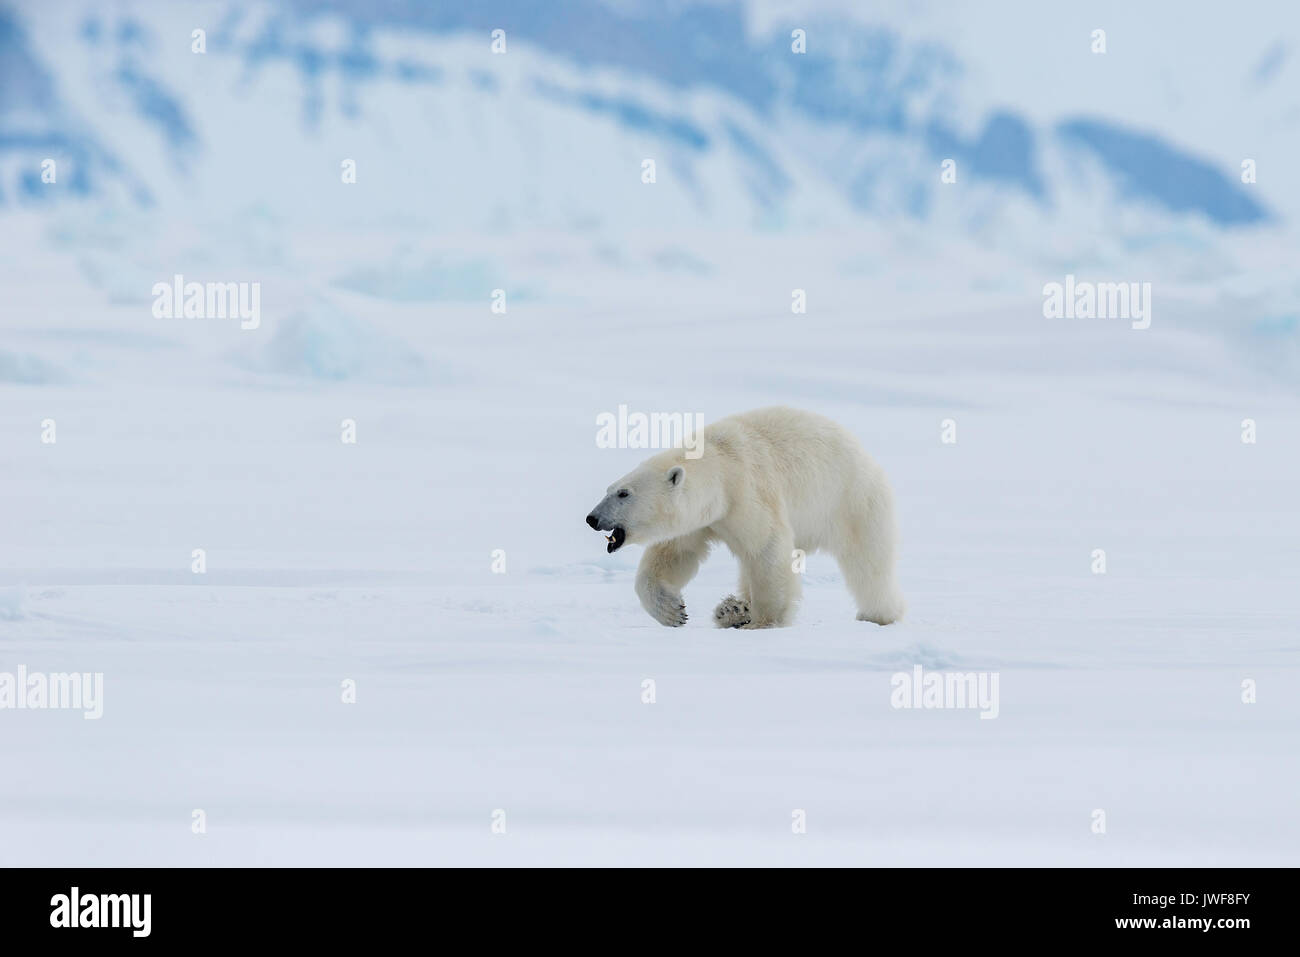 Male polar bear roaming the frozen surface of Admiralty Inlet, Northern Baffin Island, Canada. - Stock Image